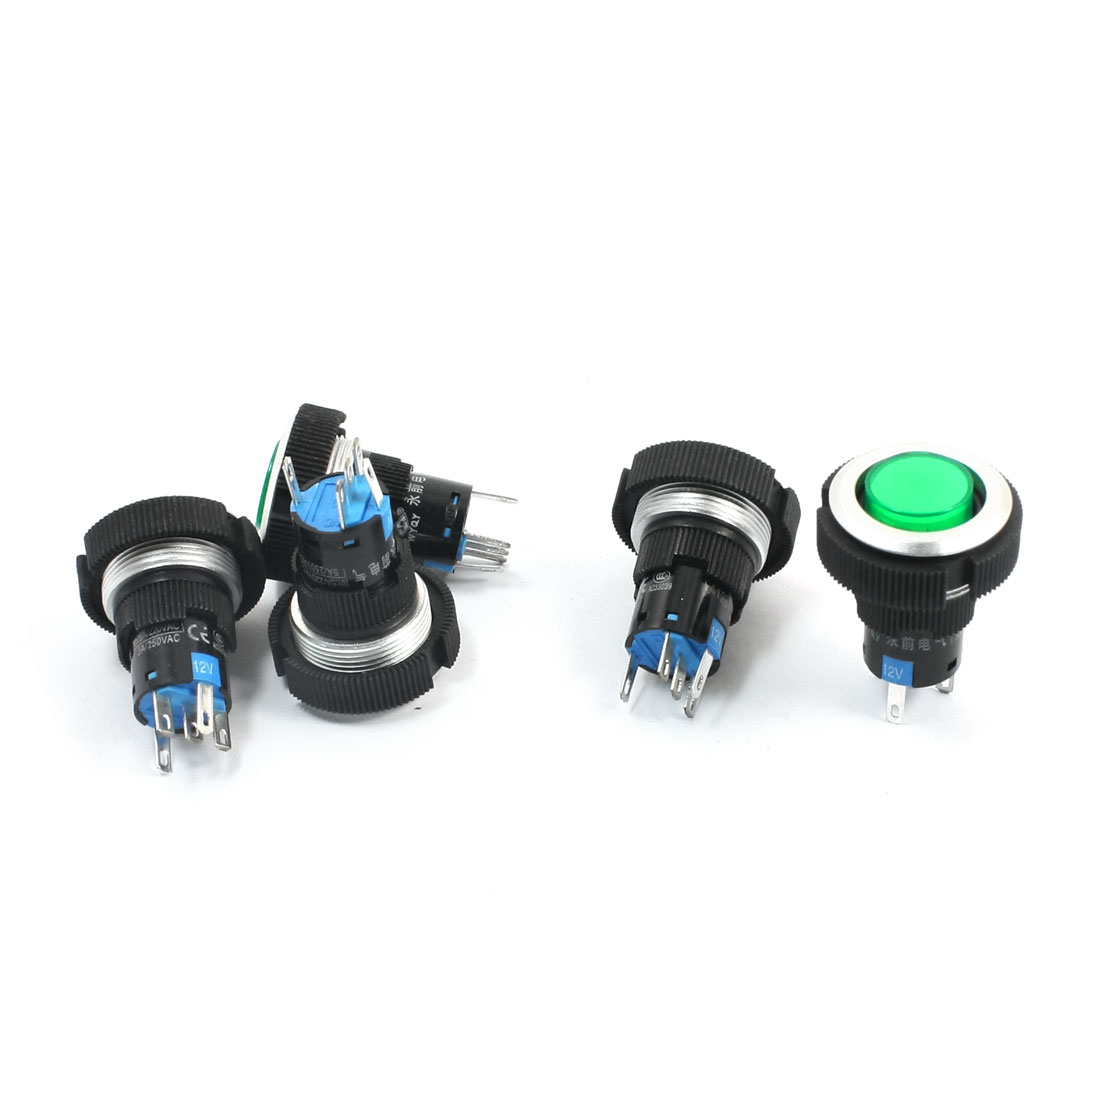 5 Pcs 12V 22mm Thread Panel Mounting SPDT 1NO 1NC 5Pin Soldering Momentary Green Pilot Lamp Car Push Button Switch